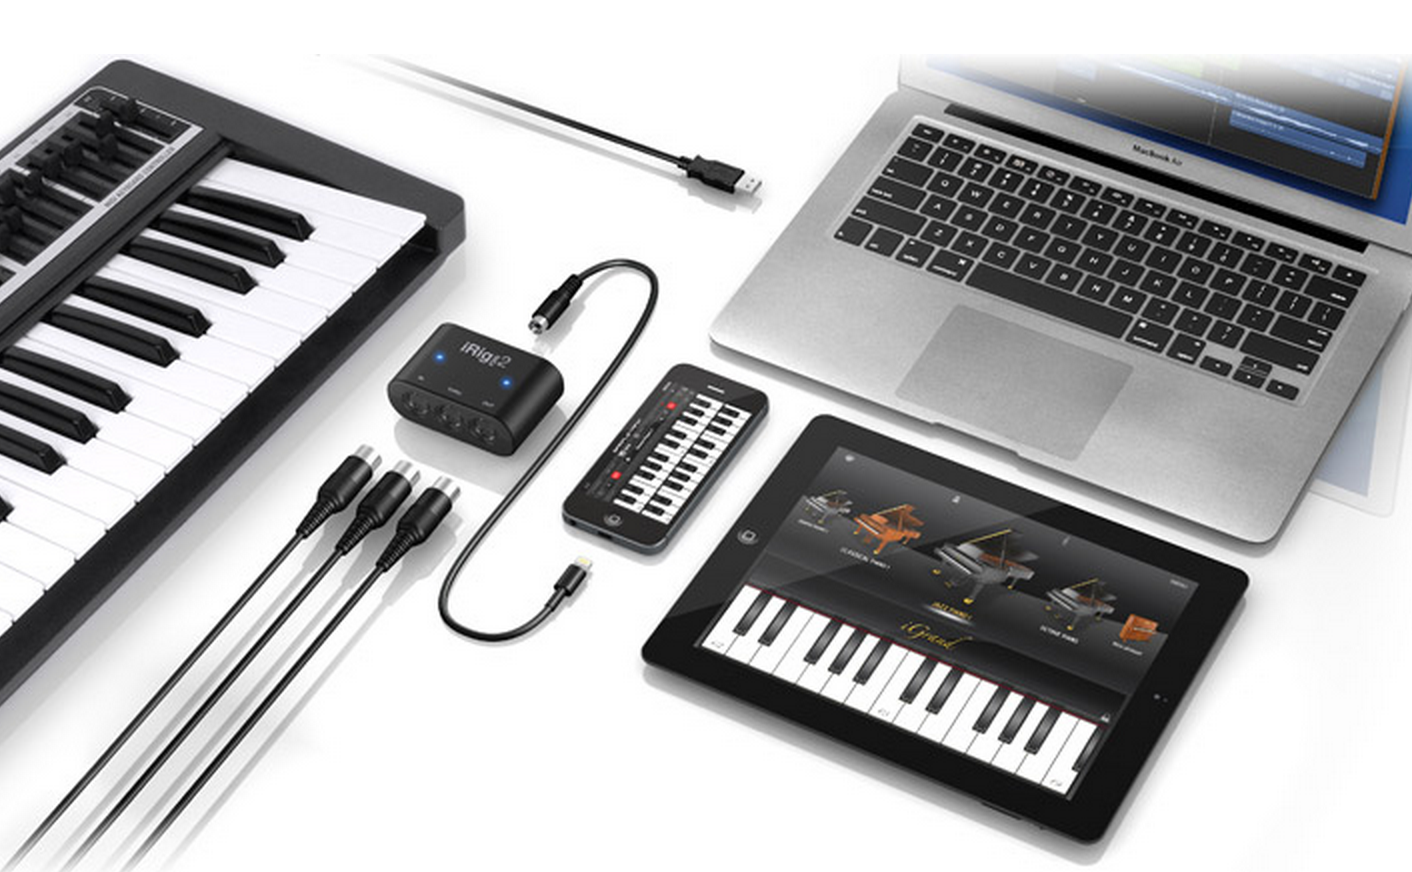 irig midi | Starr Ackerman's Music Production Blog & PR/AR